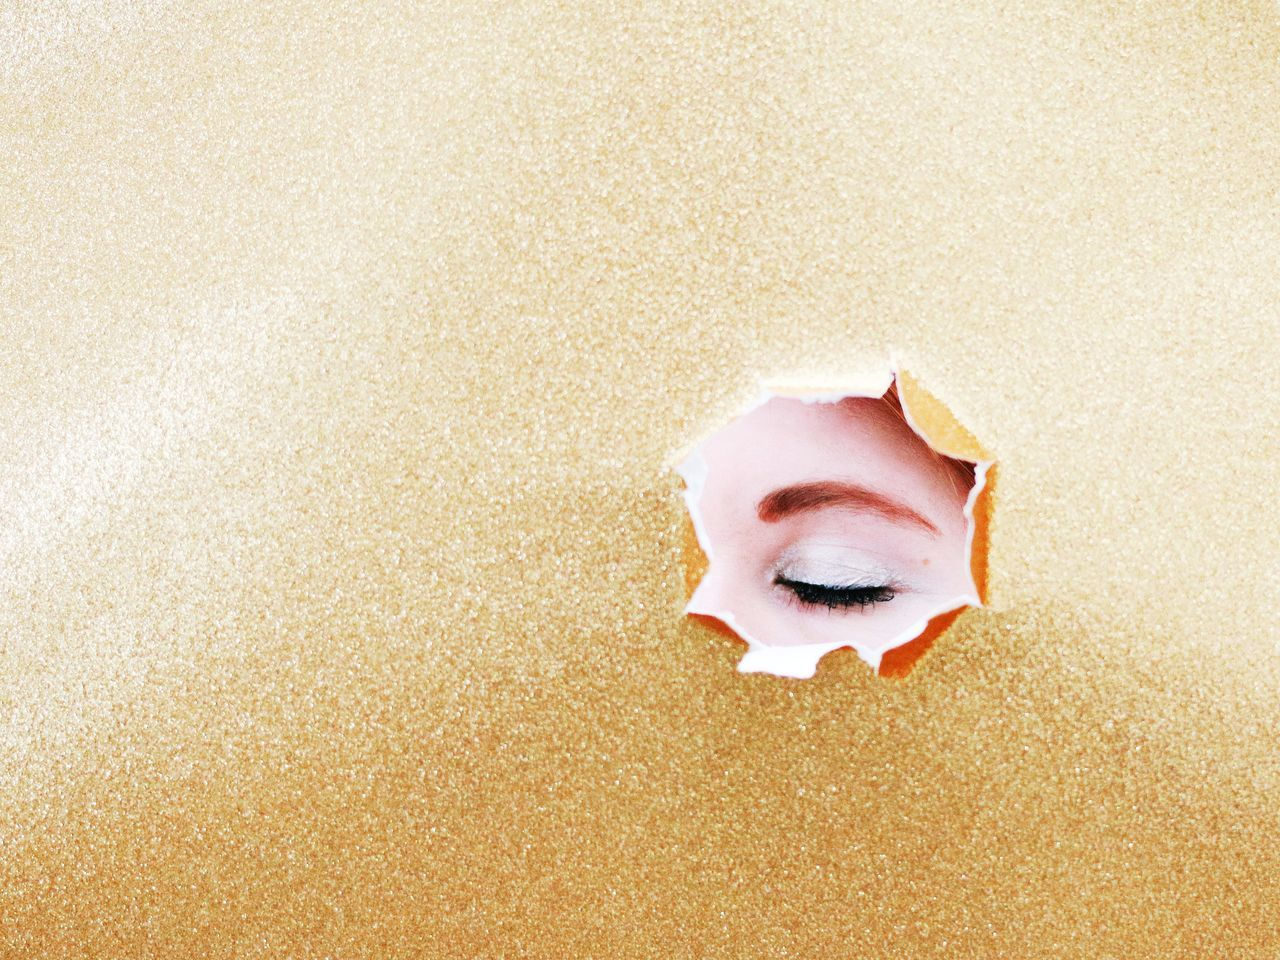 Golden eye. Beauty Close-up People Eye4photography  EyeEm Best Shots EyeEm Gallery The EyeEm Facebook Cover ChallengePortrait Of A Woman Portrait Color Portrait Glamour Golden Moment Golden Light Minimalism Details And Colors